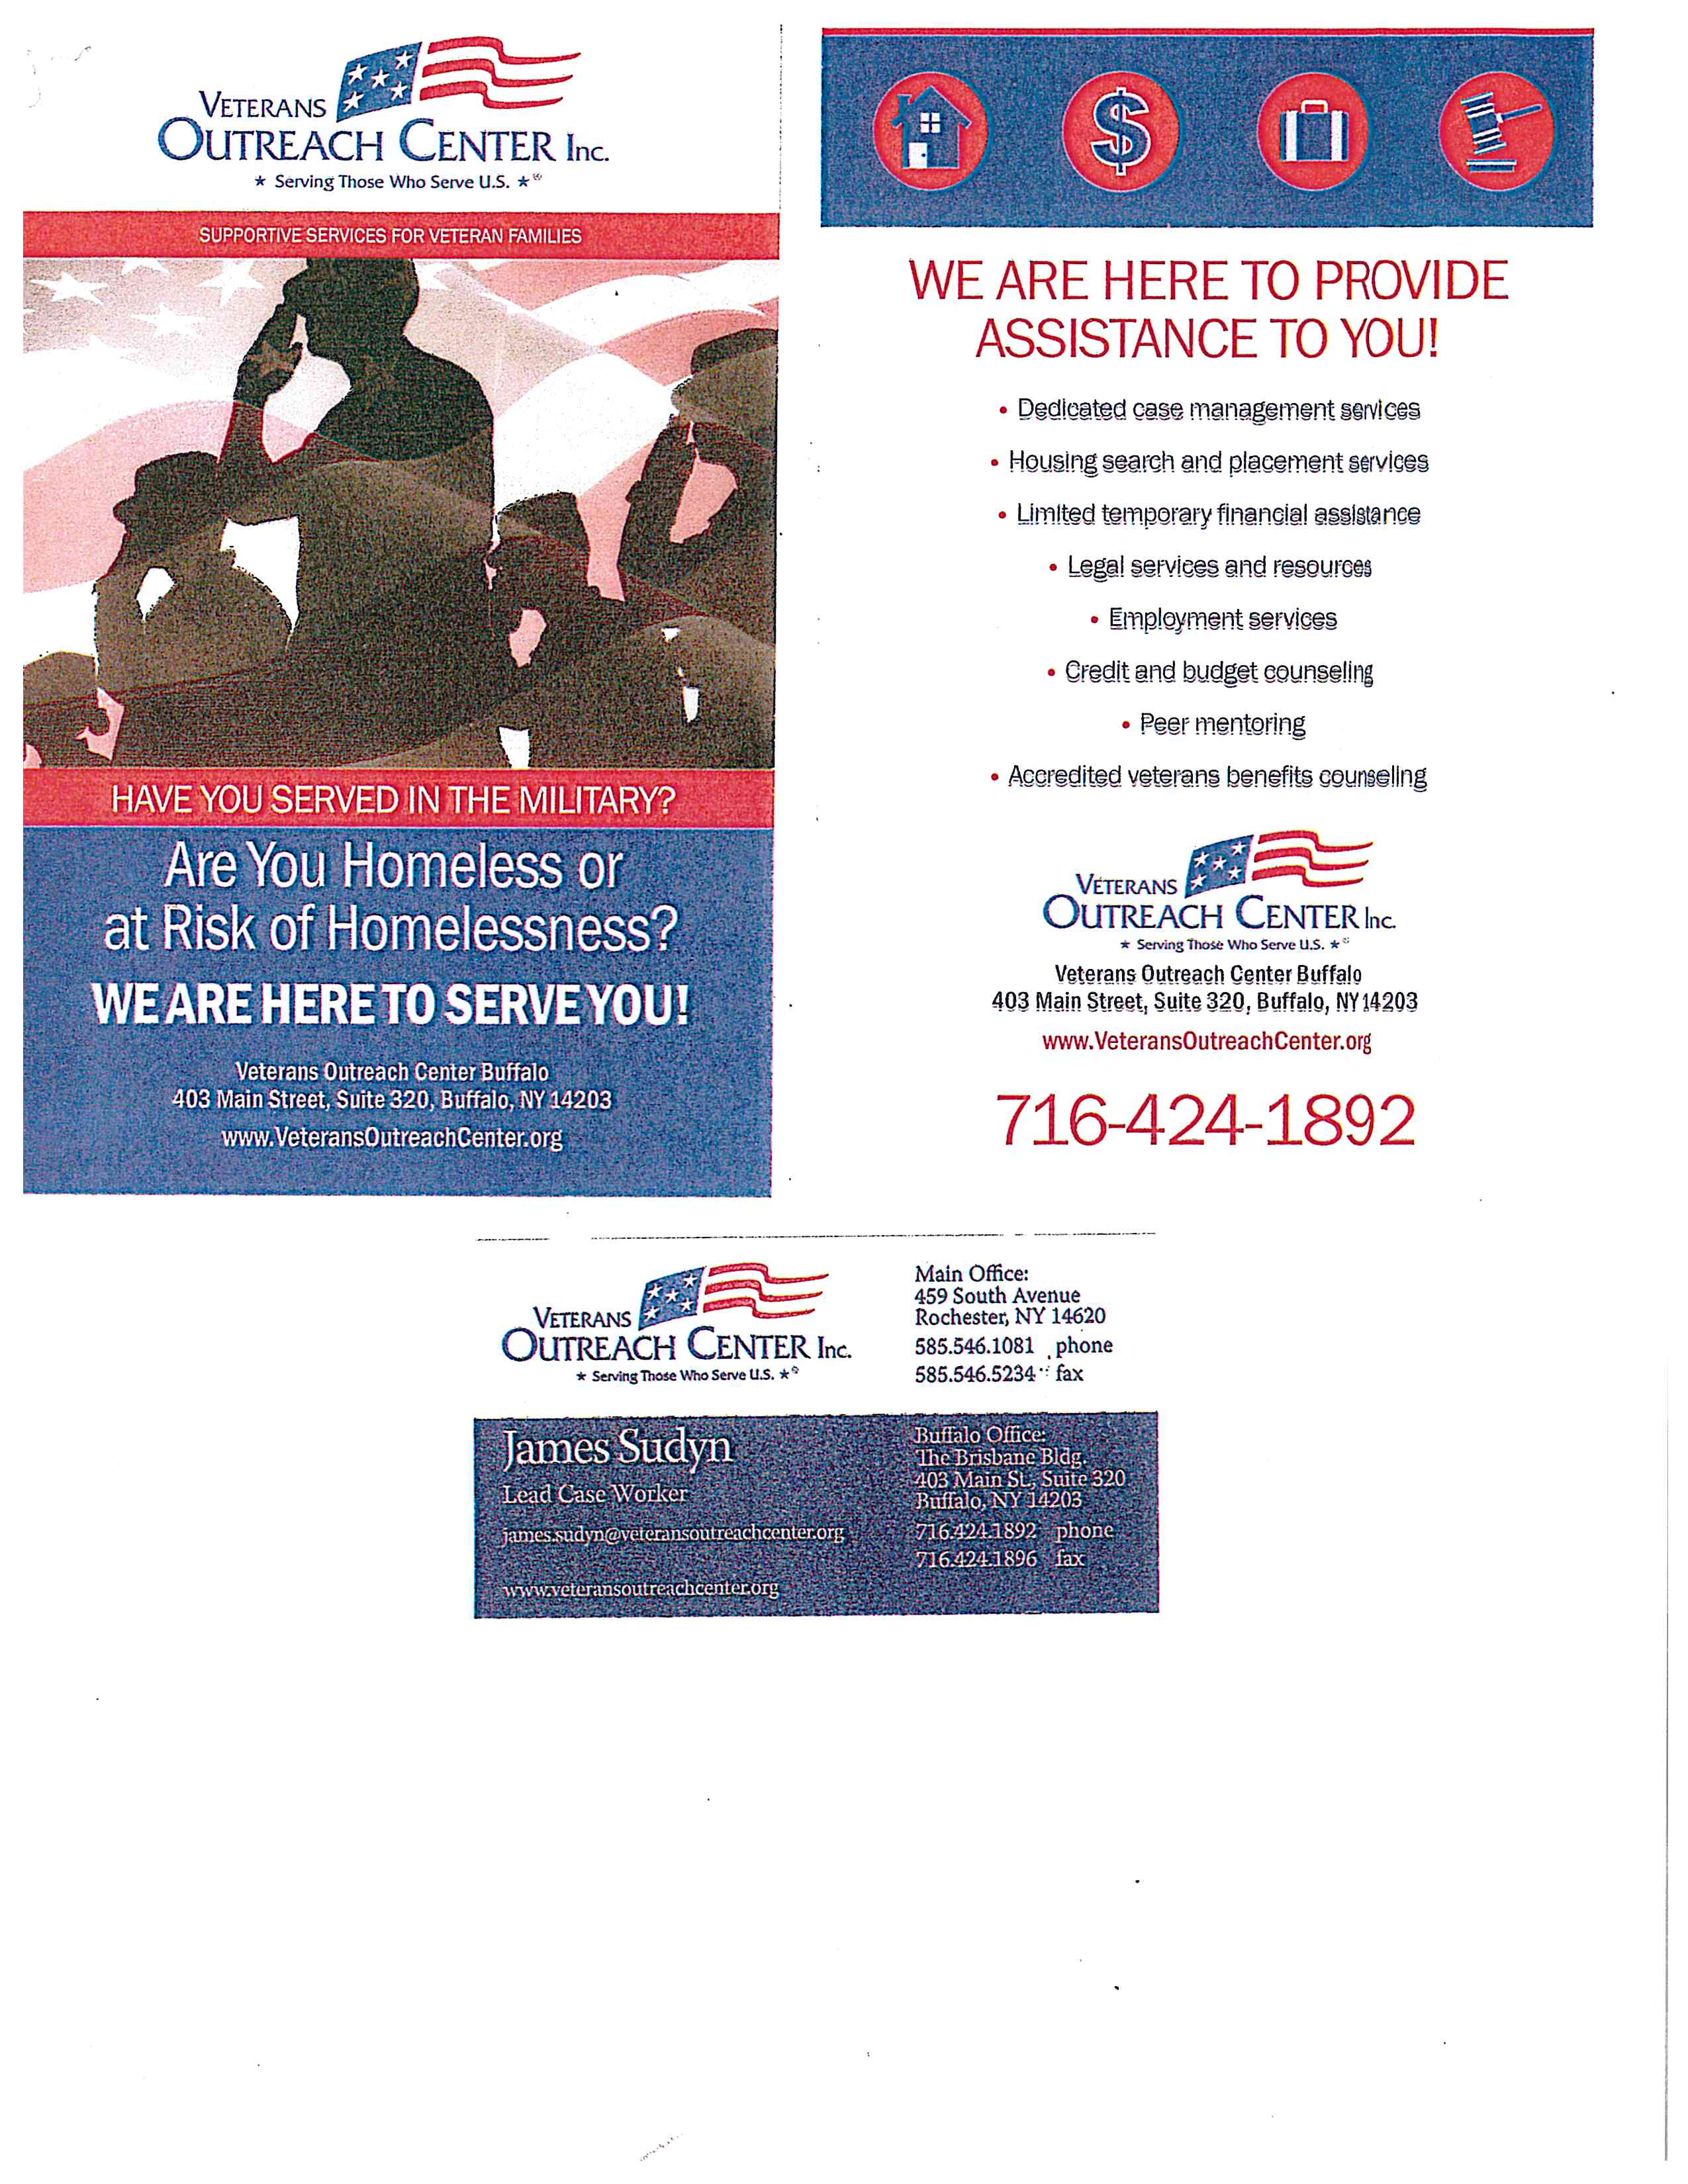 Veterans Outreach Ctr